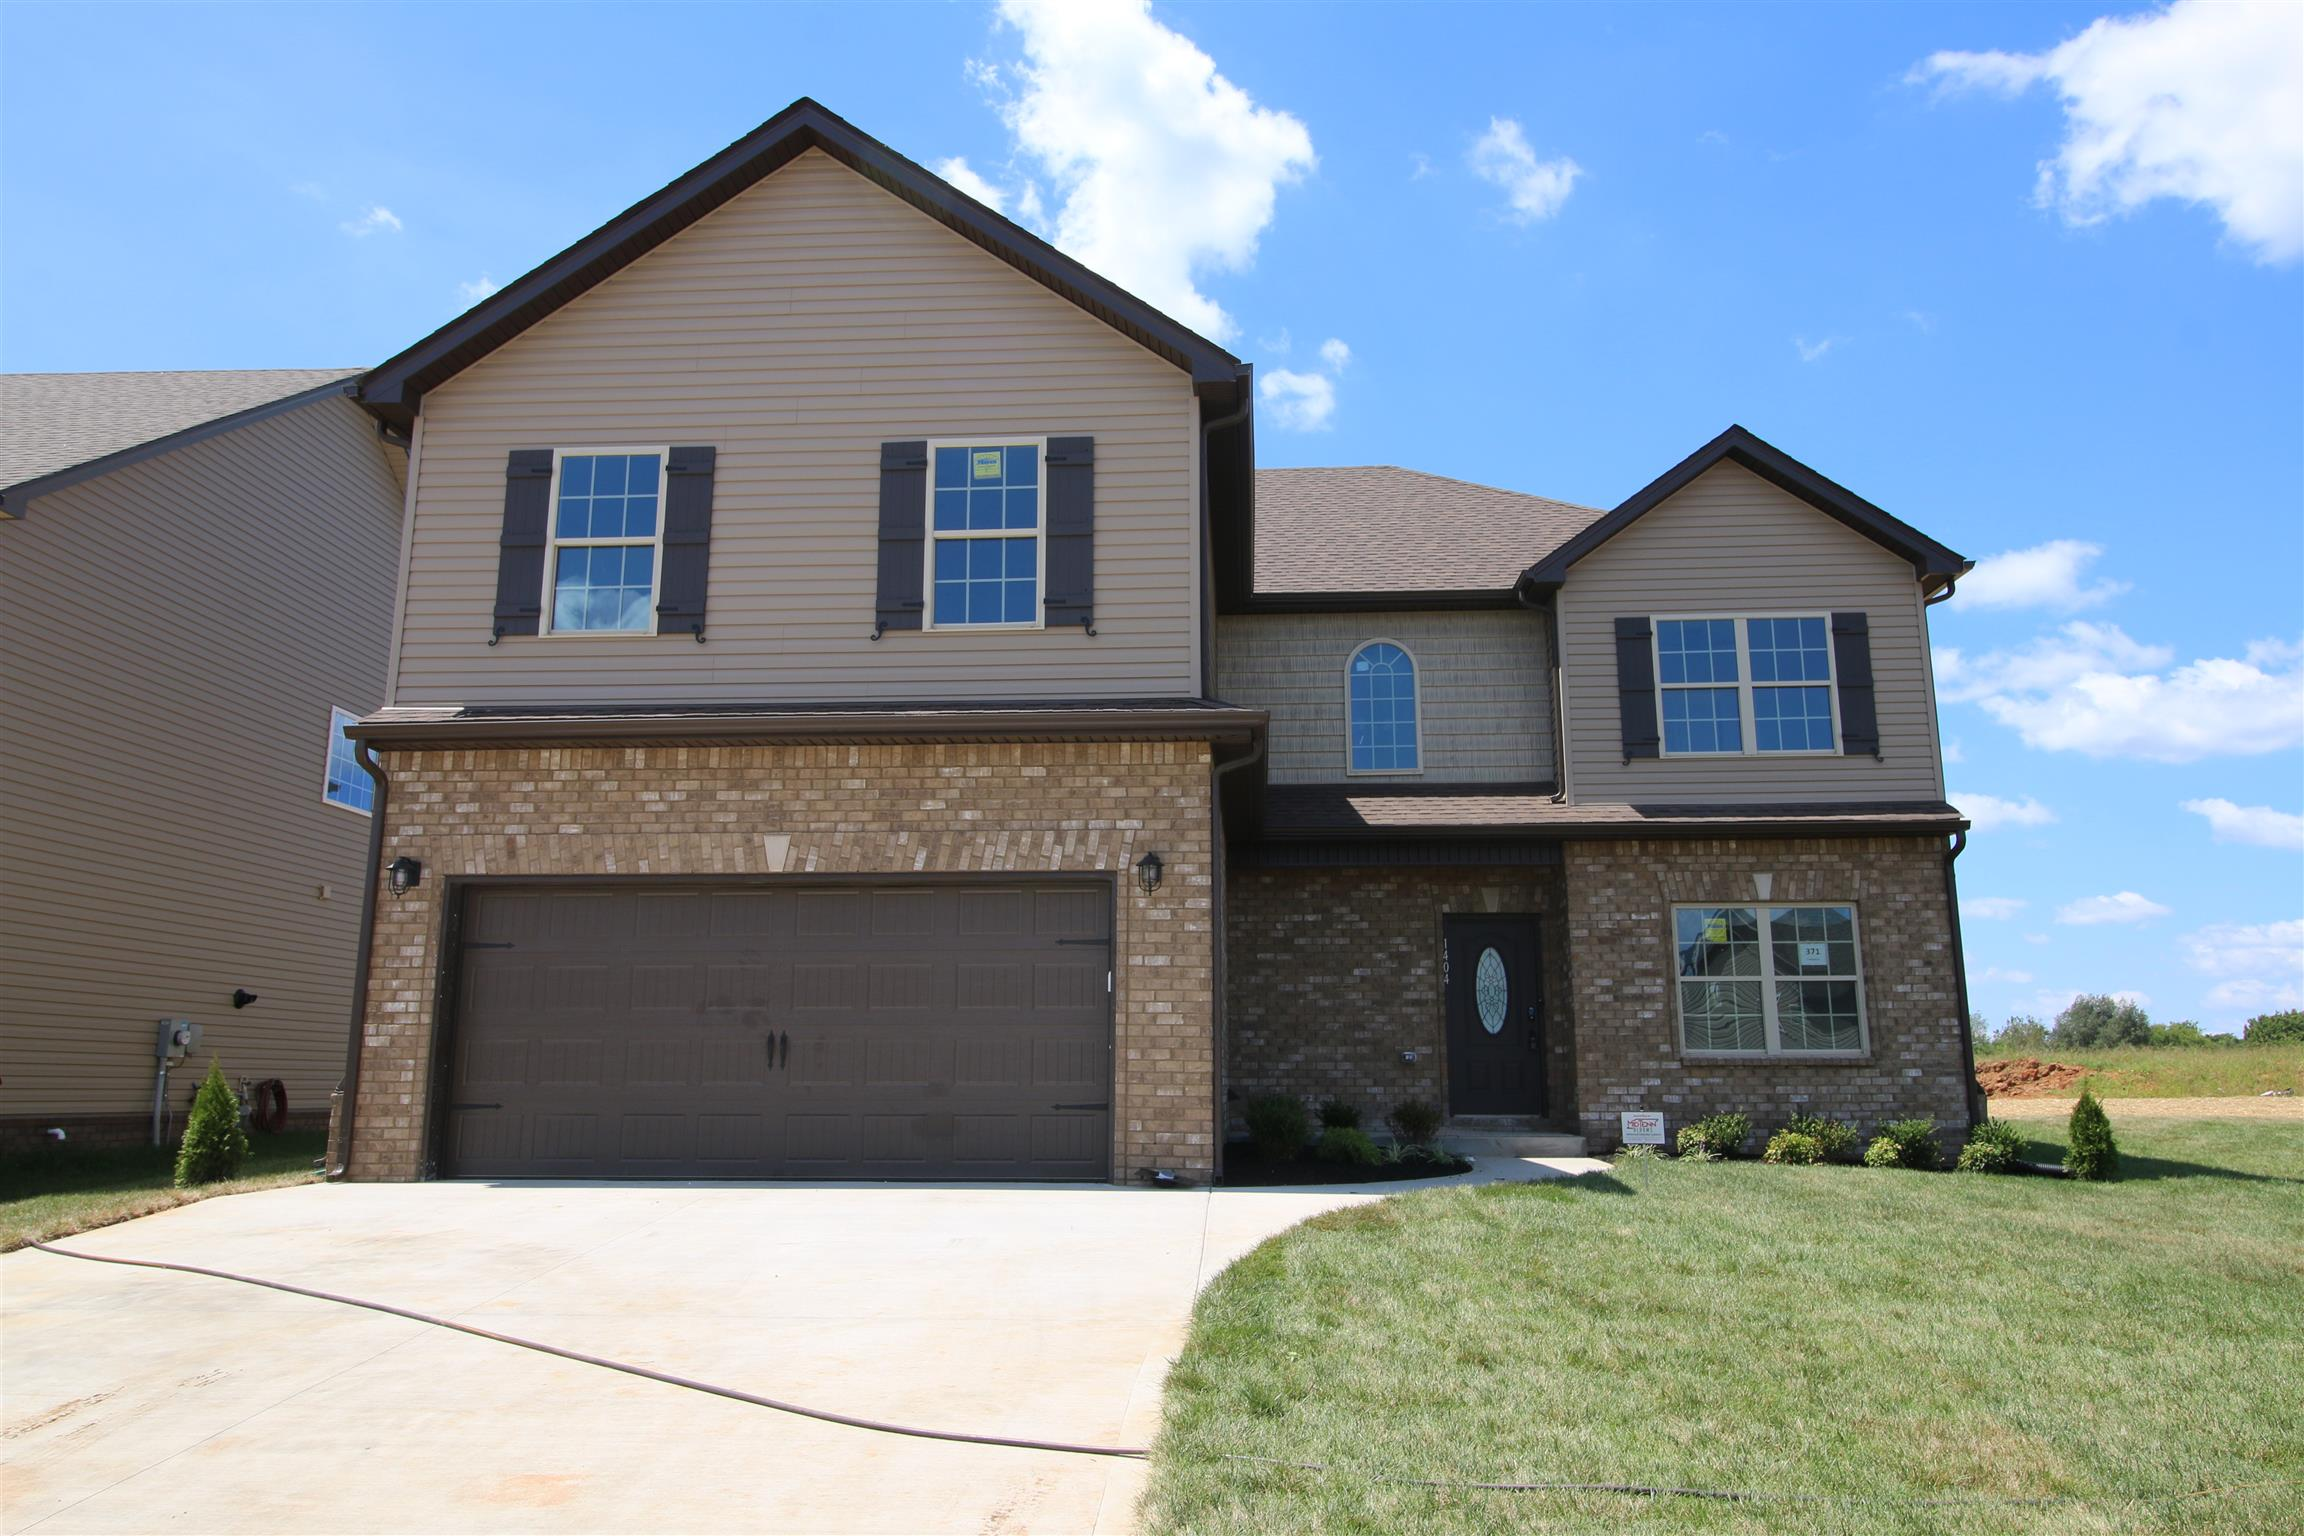 371 Summerfield, Clarksville, TN 37040 - Clarksville, TN real estate listing